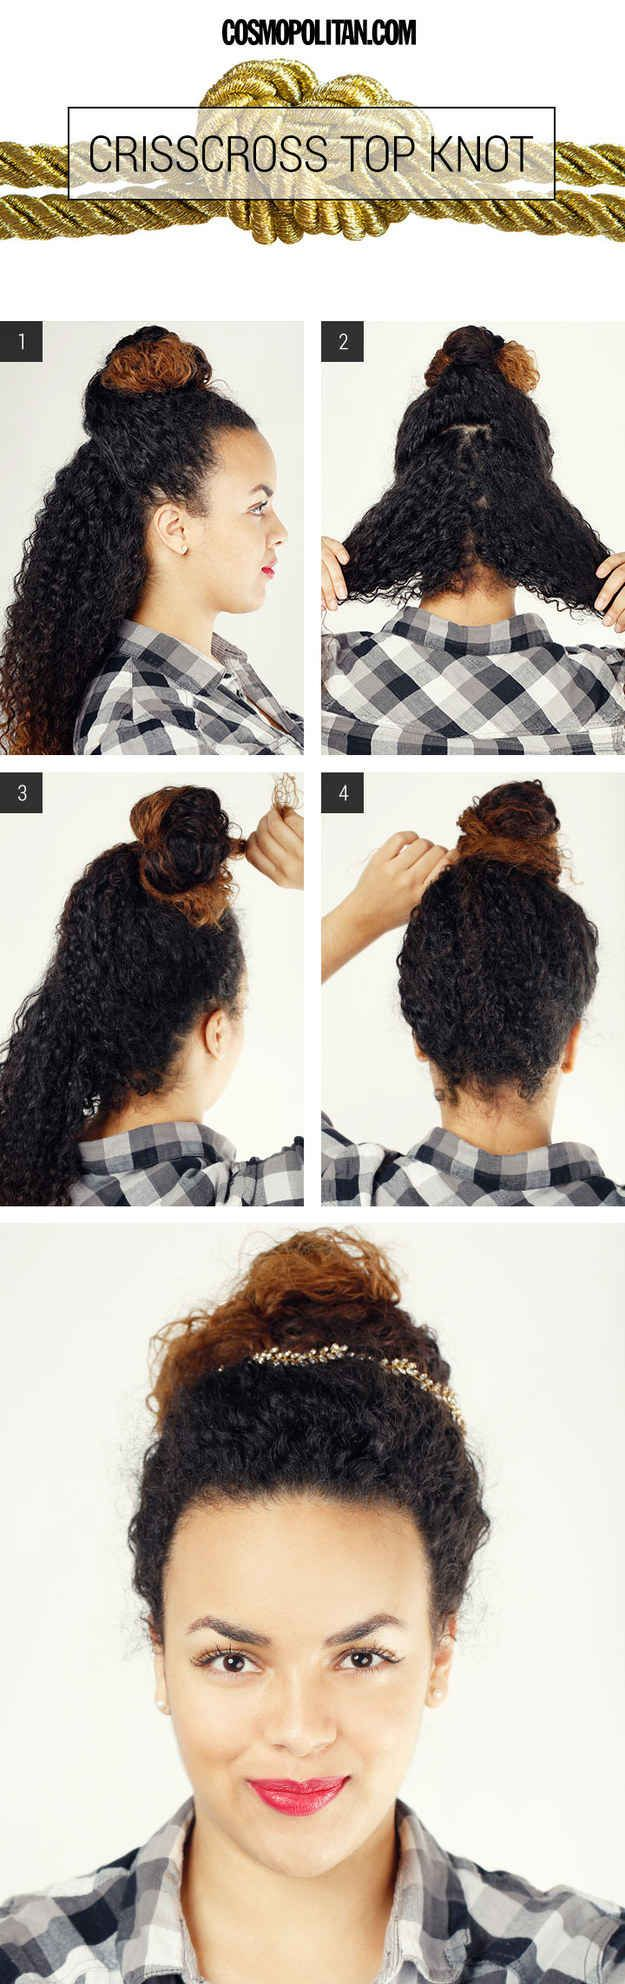 Criss-cross curly hair to keep it full. | 19 Ways To Take Your Top Knot Game To The Next Level